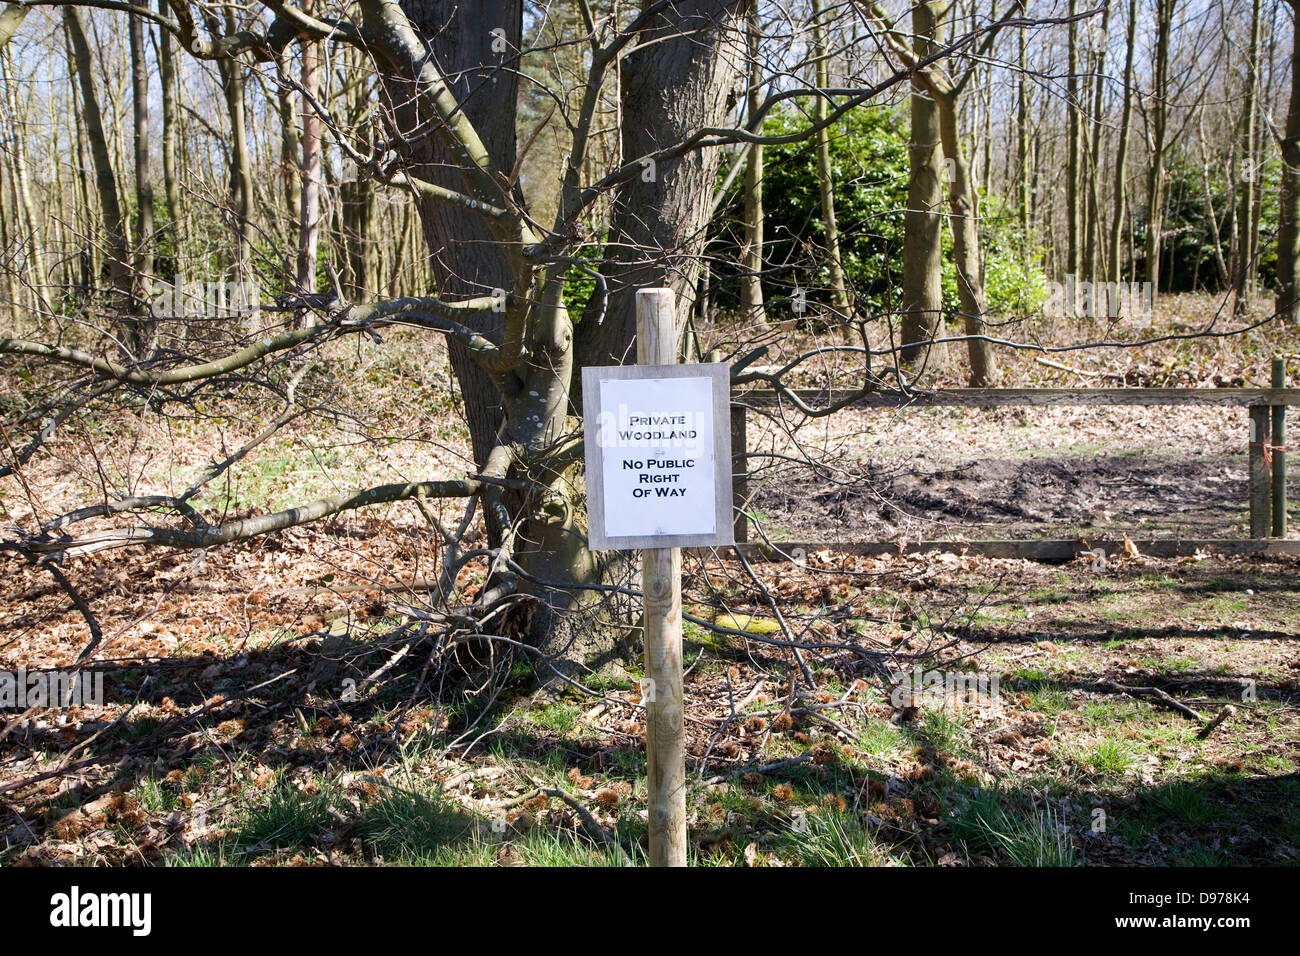 Sign for private woodland with no public right of way, Sutton, Suffolk, England - Stock Image